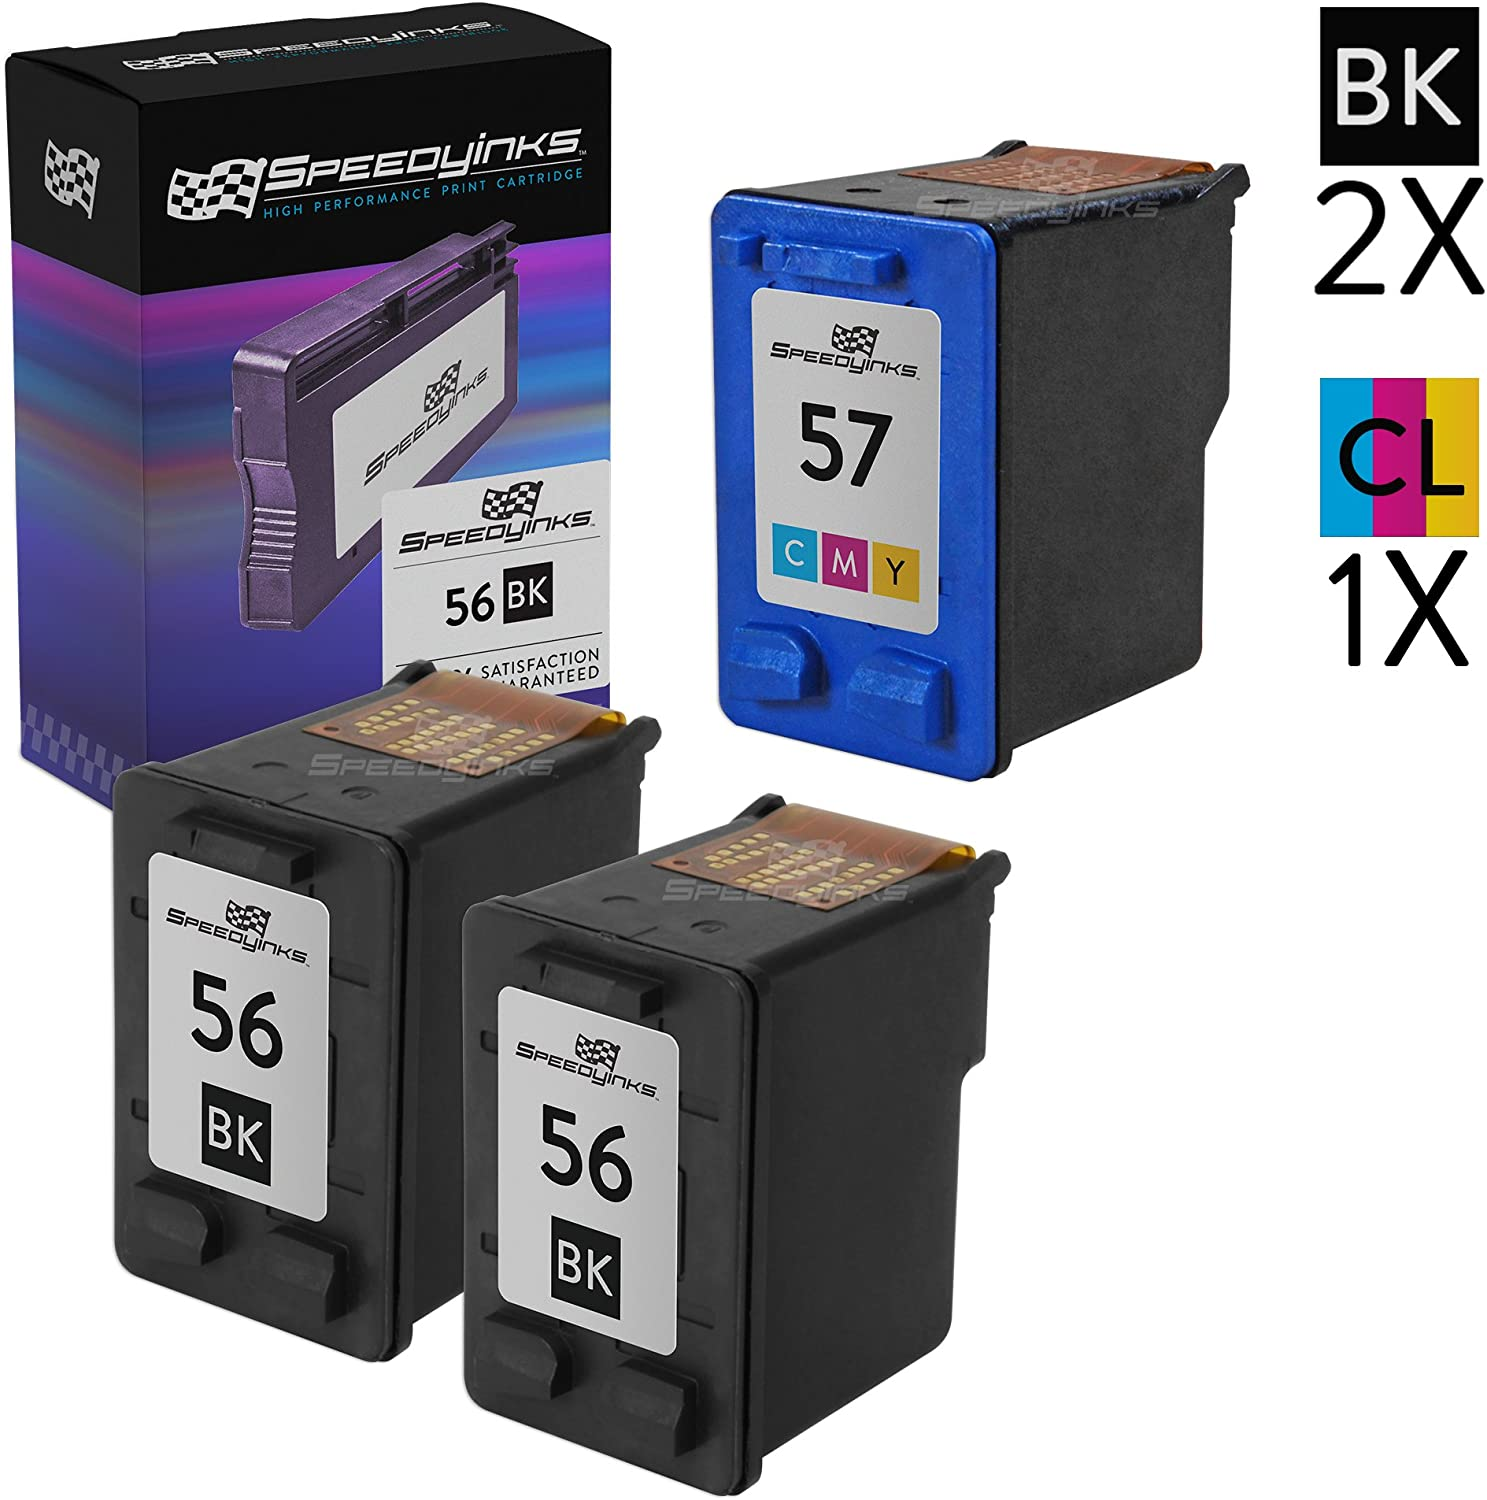 Speedy Inks Remanufactured Ink Cartridge Replacement for HP 56 & HP 57 (2 Black, 1 Color, 3-Pack)